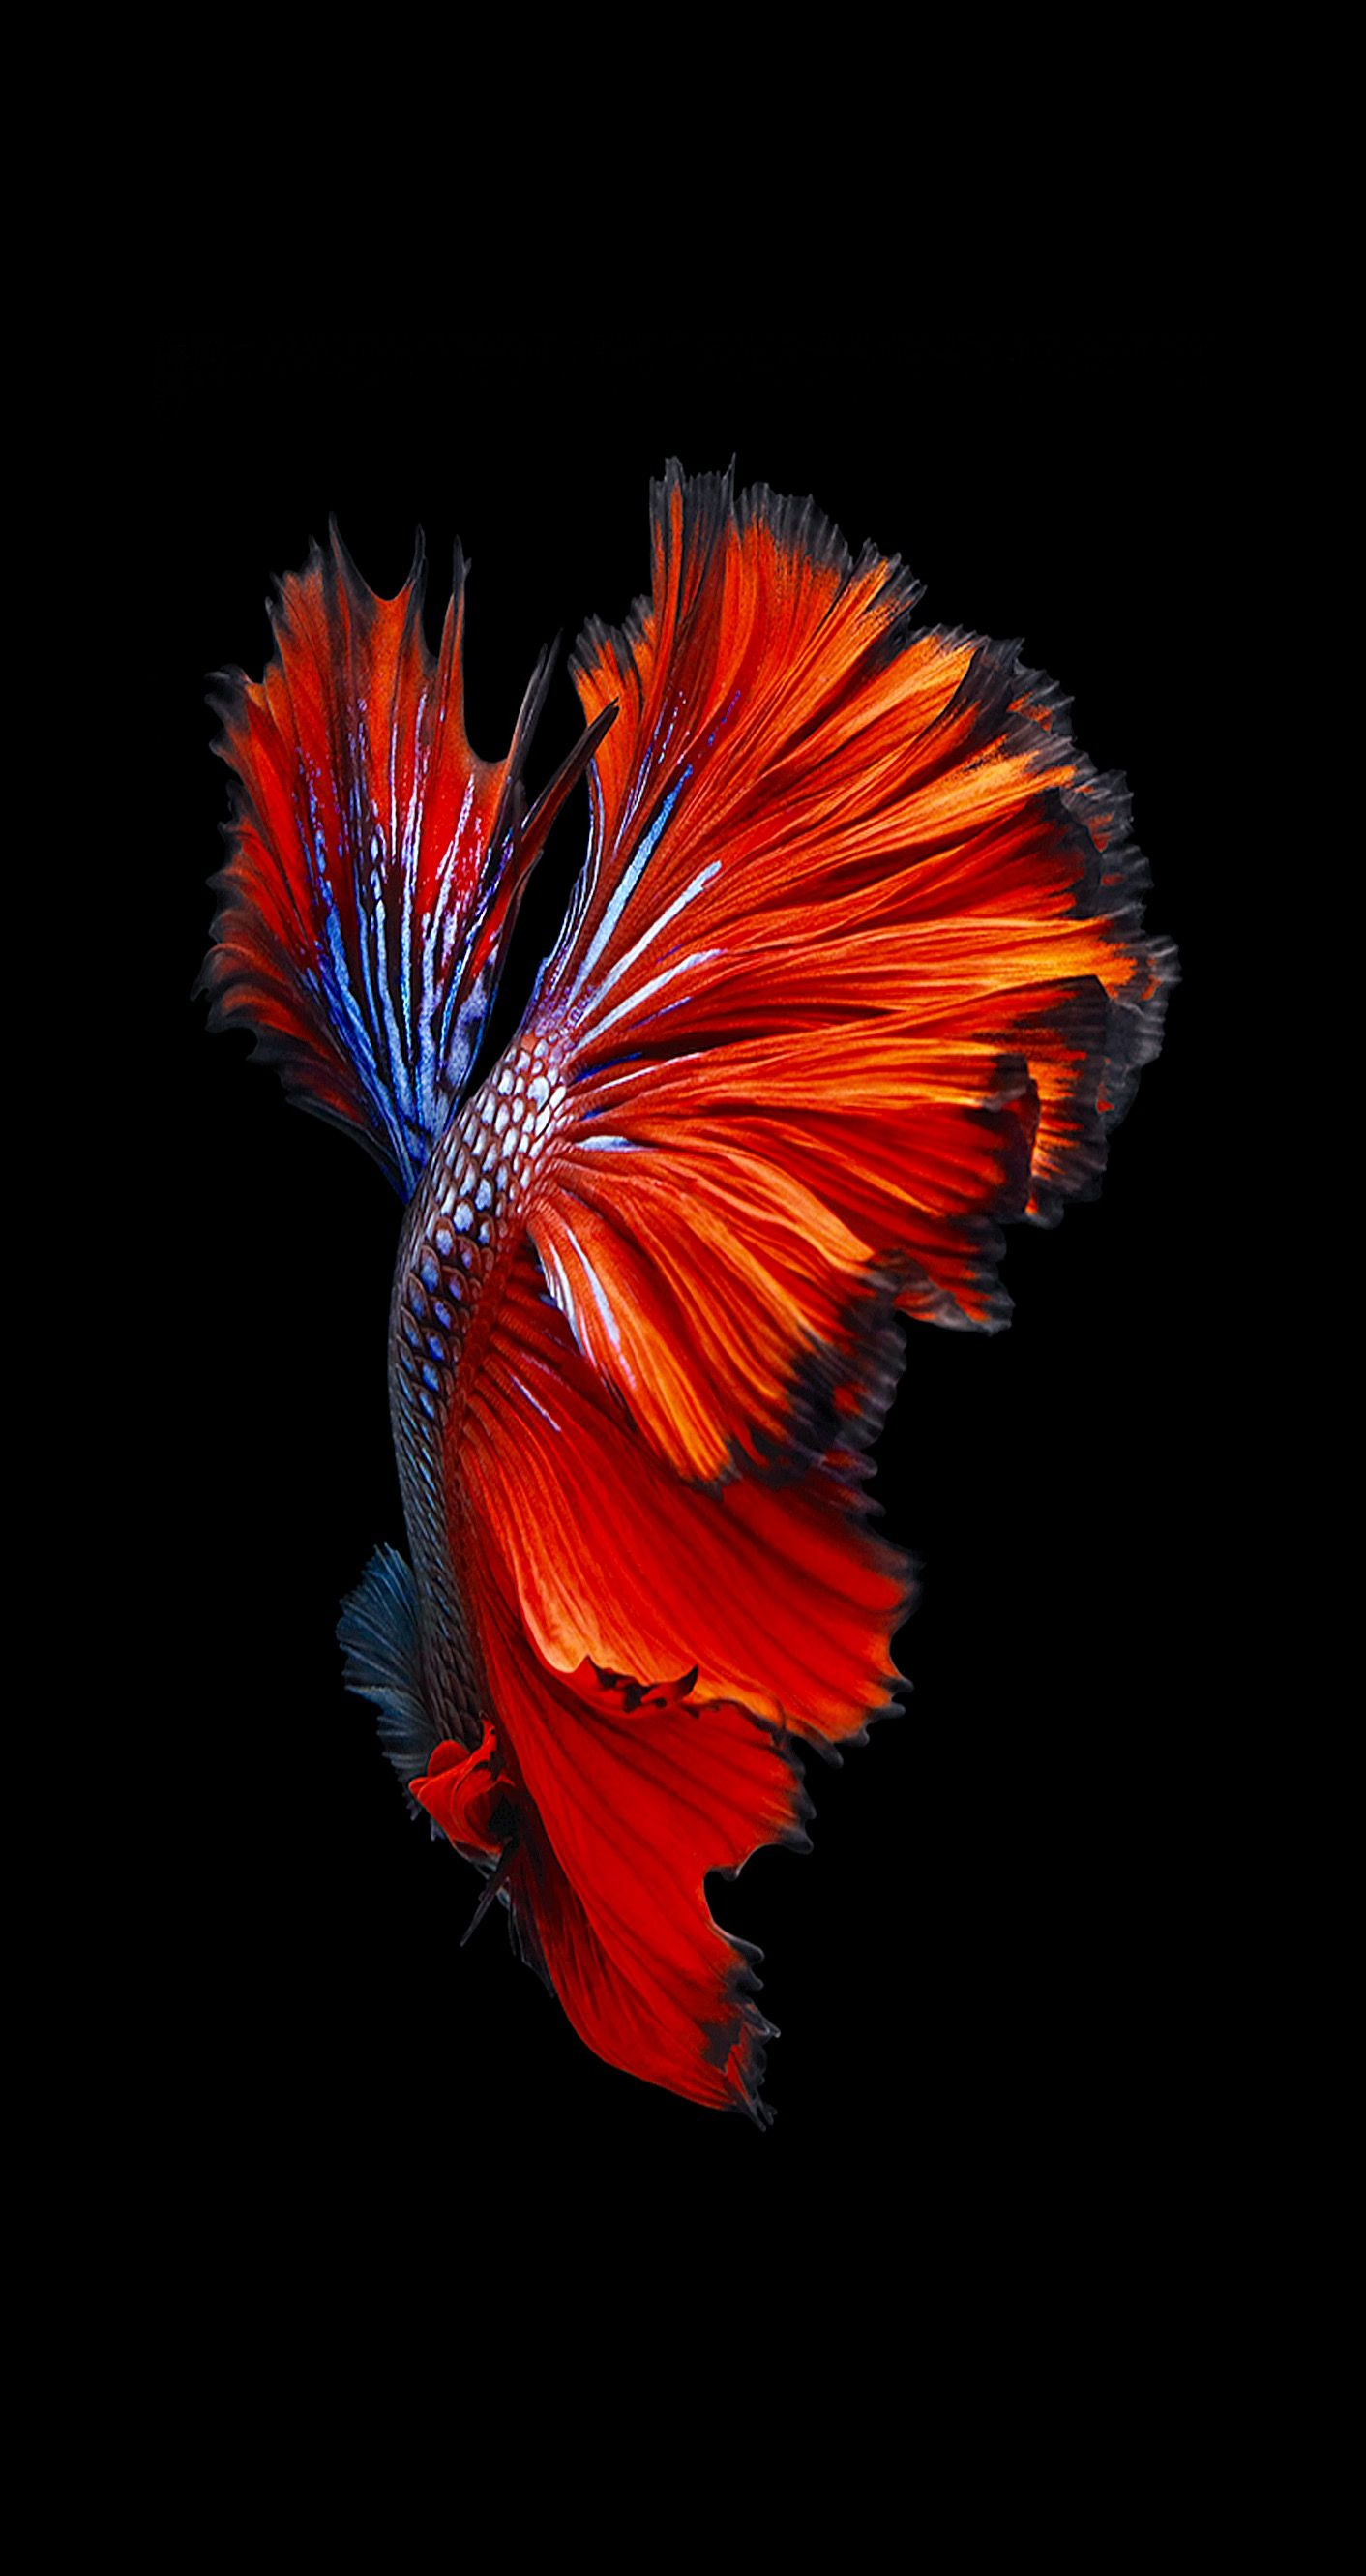 iPhone 6s and iPhone 6s Plus dark wallpaper | design in 2019 | Fish wallpaper, Fish artwork ...